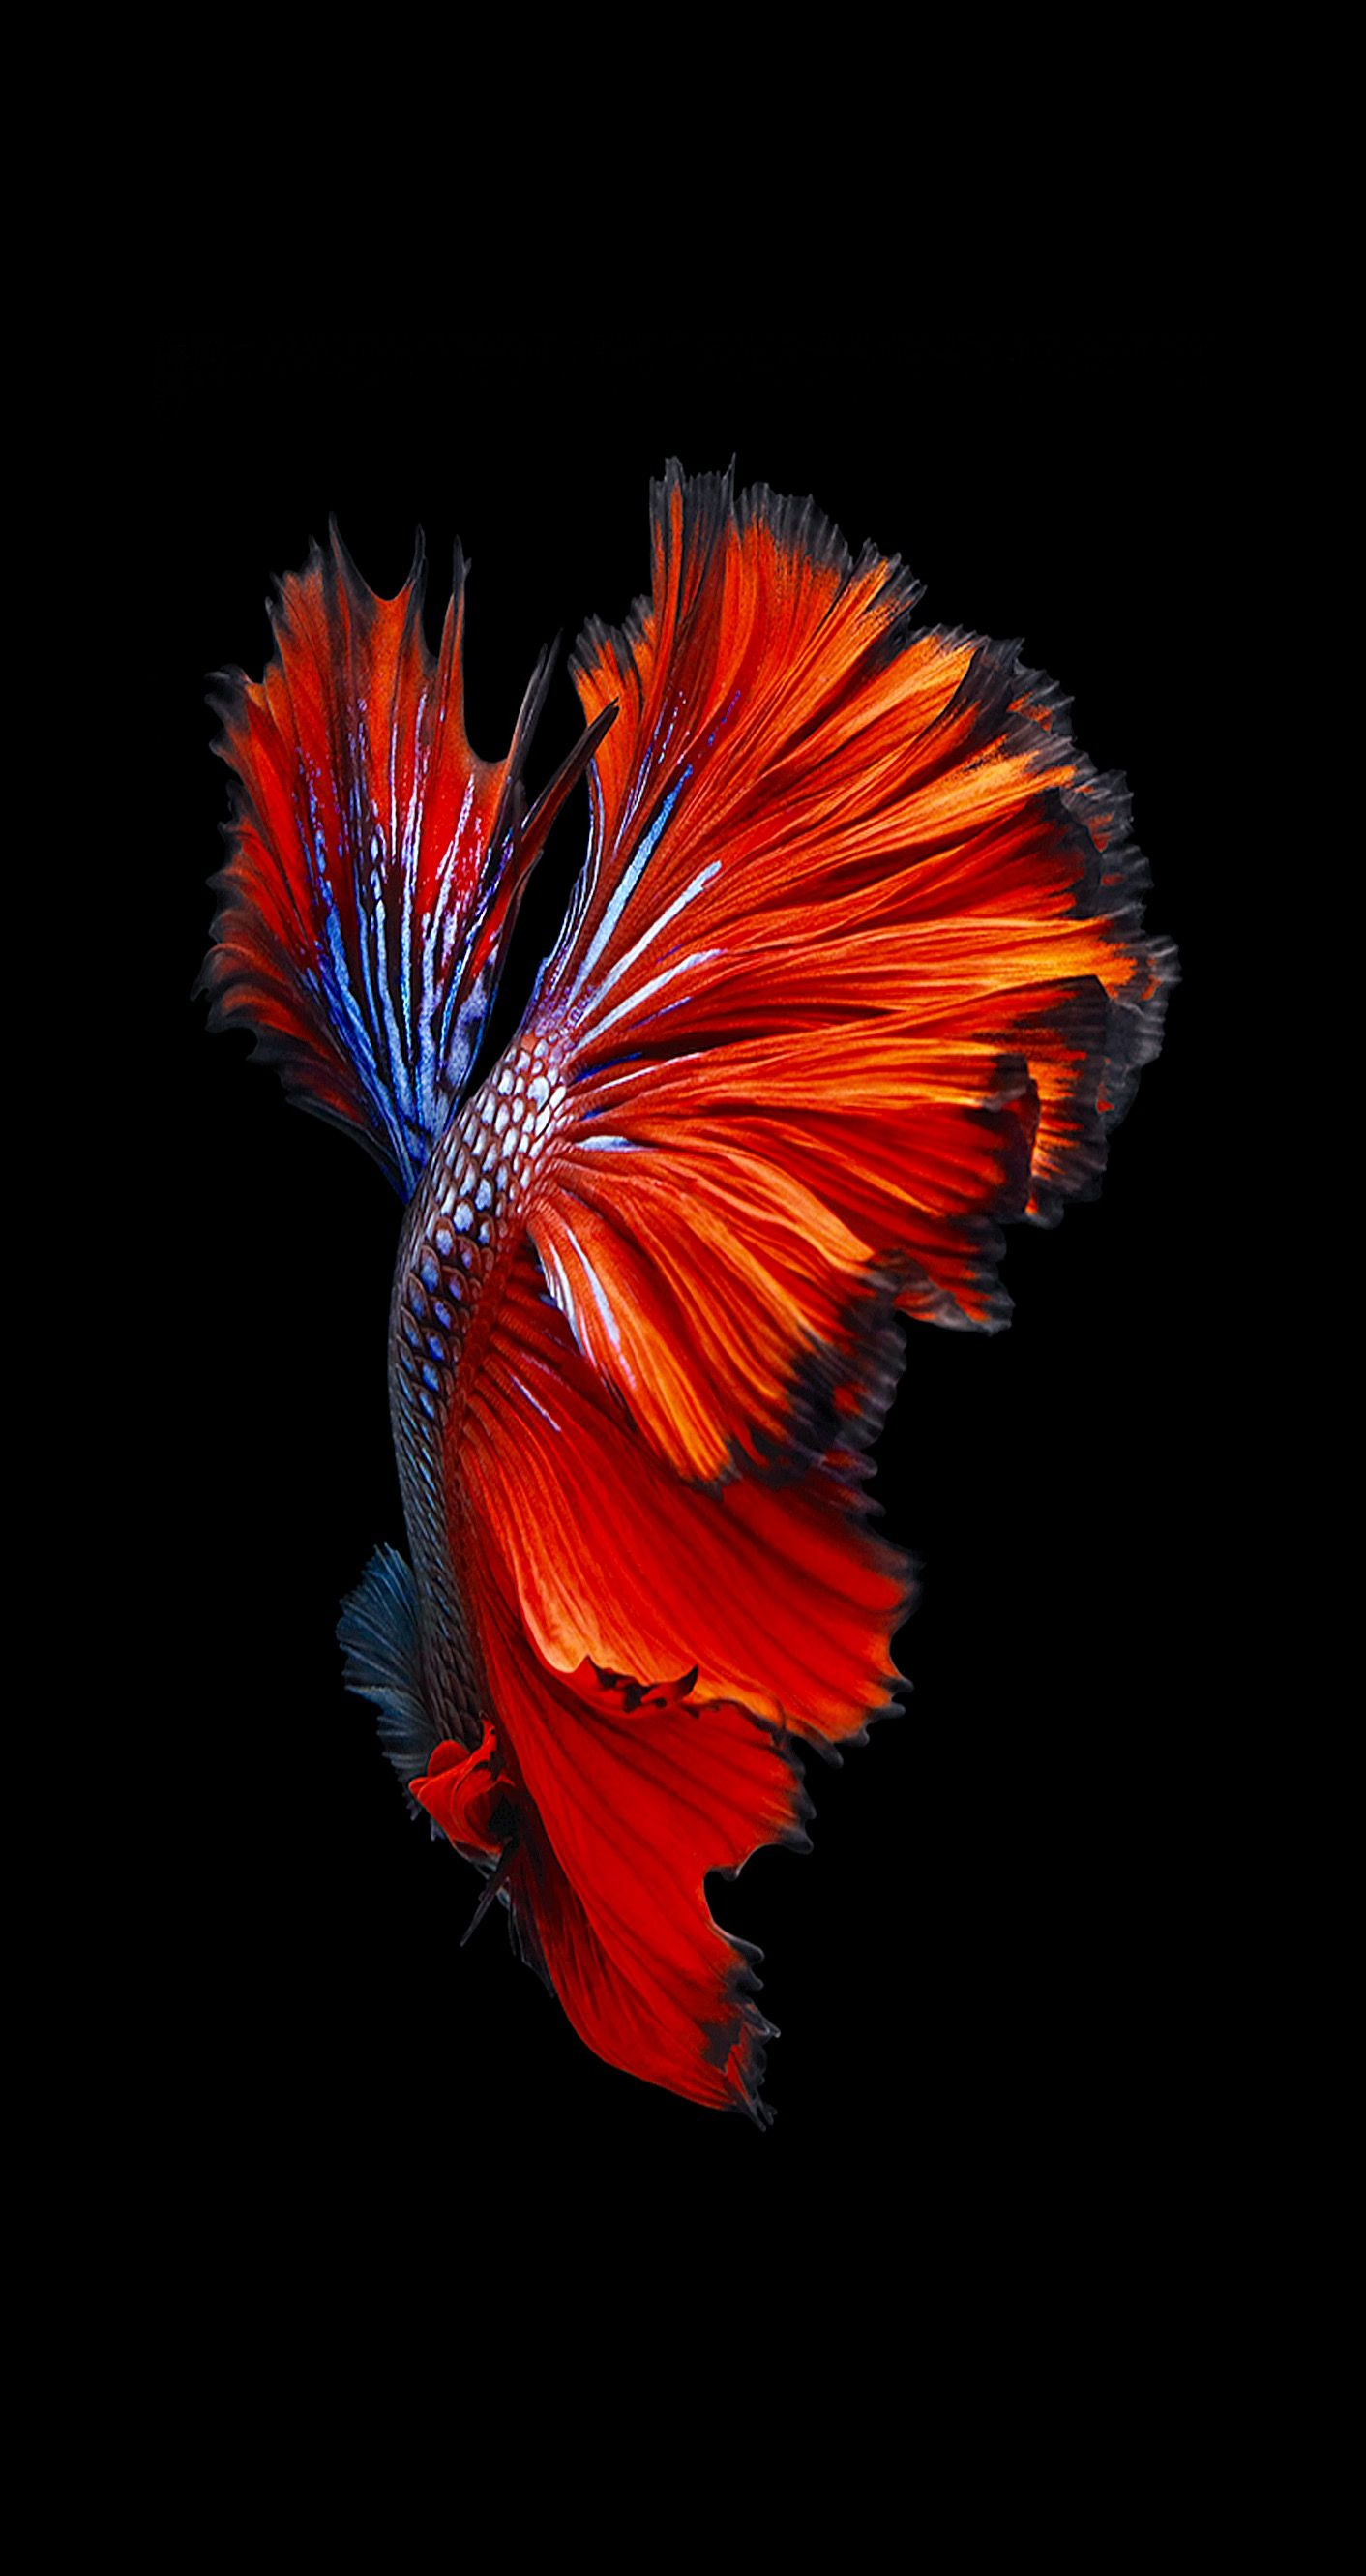 iPhone 6s and iPhone 6s Plus dark wallpaper | design in 2019 | Fish wallpaper, Fish artwork ...